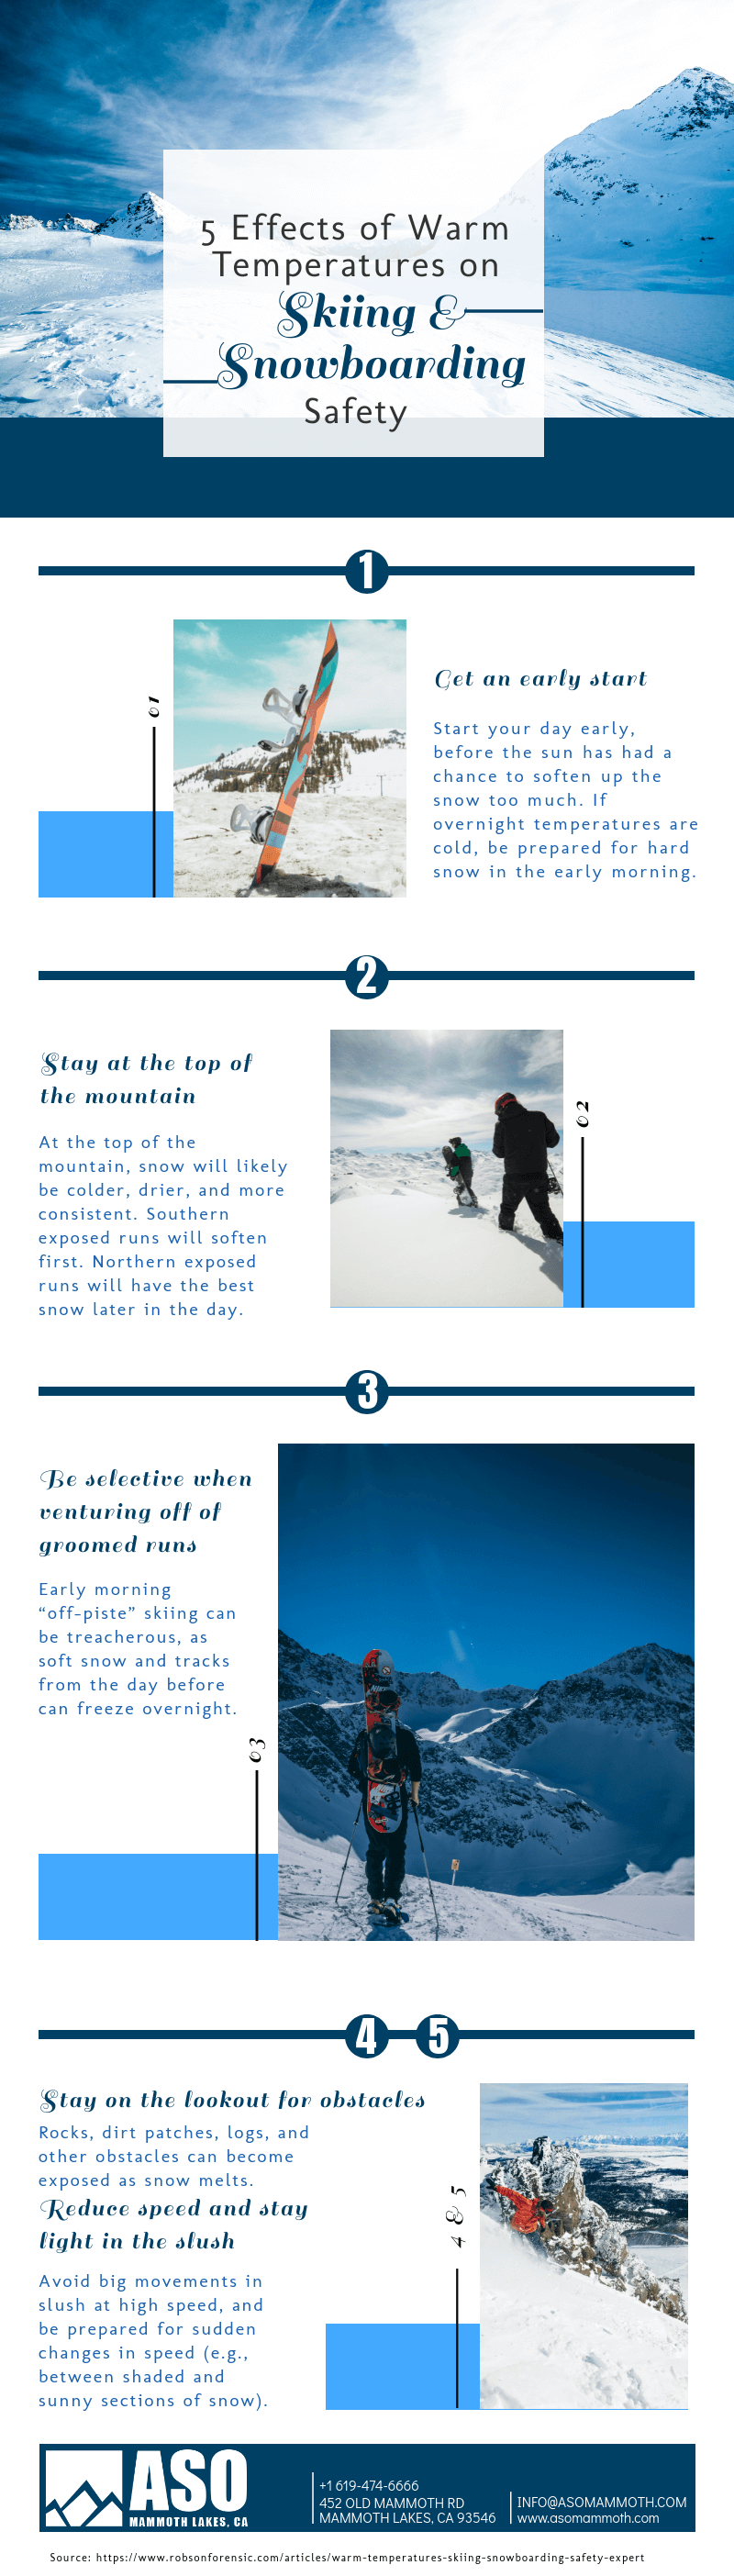 warm temperature effects on ski and snowboard safety